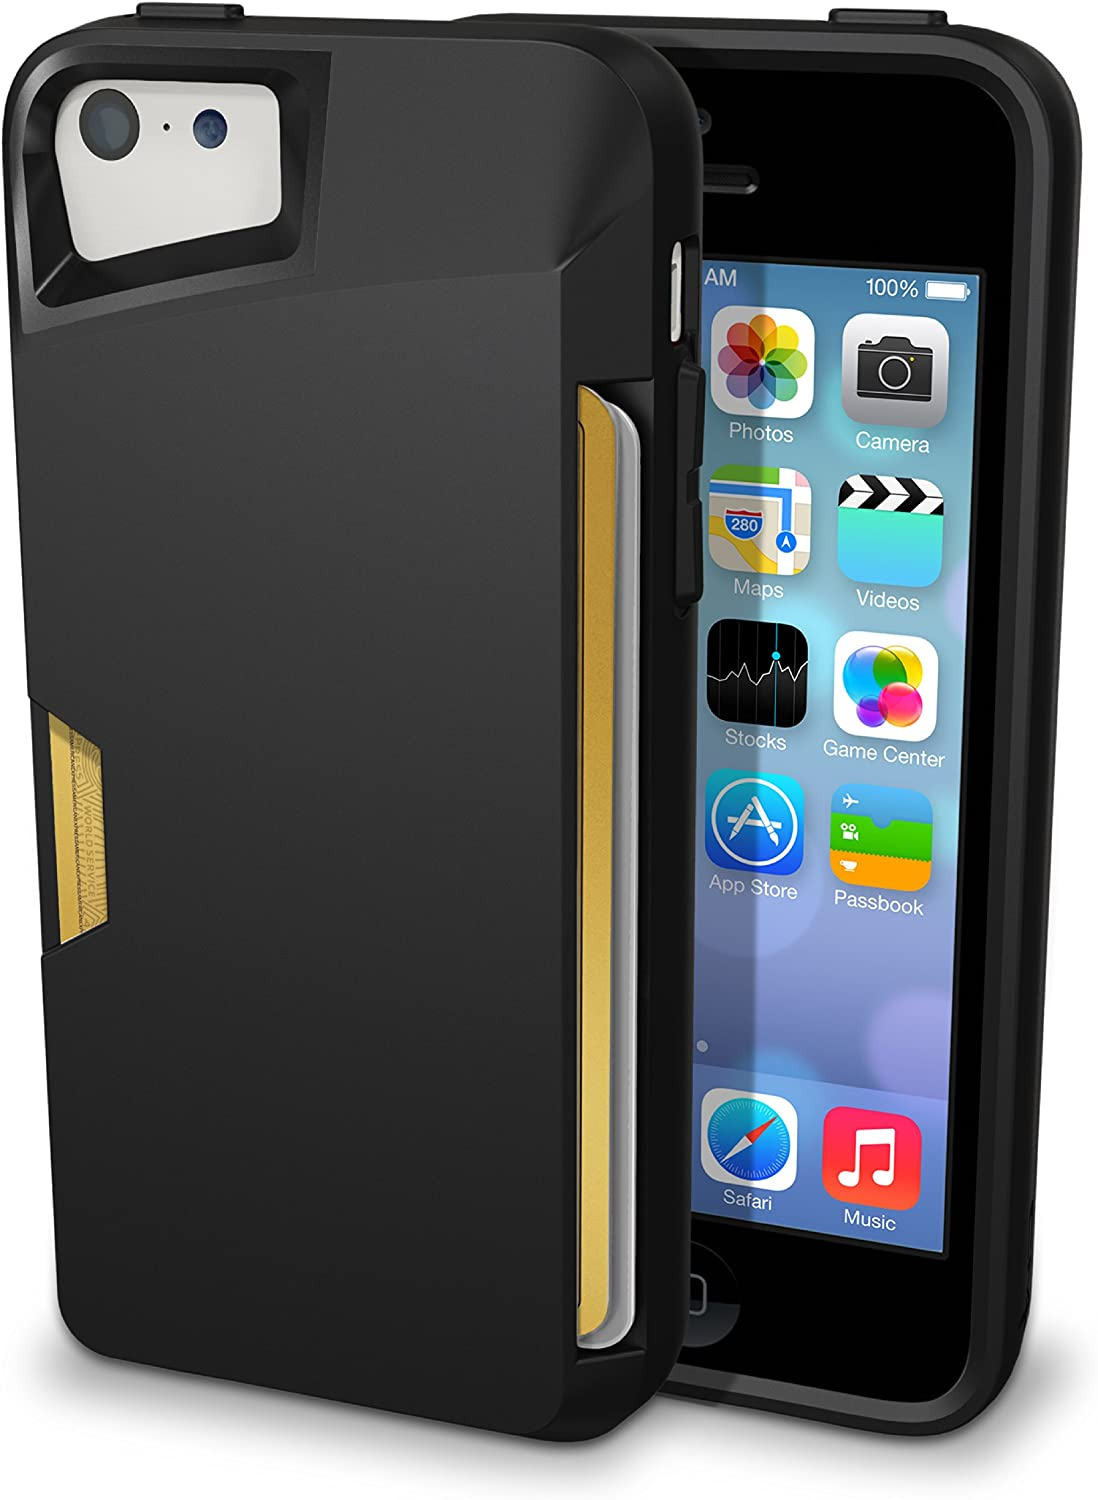 Smartish iPhone 5c Wallet Case - [Ultra Slim Protective iPhone Wallet] - Slite Card Case for iPhone 5c by (CM4) - Black Onyx'